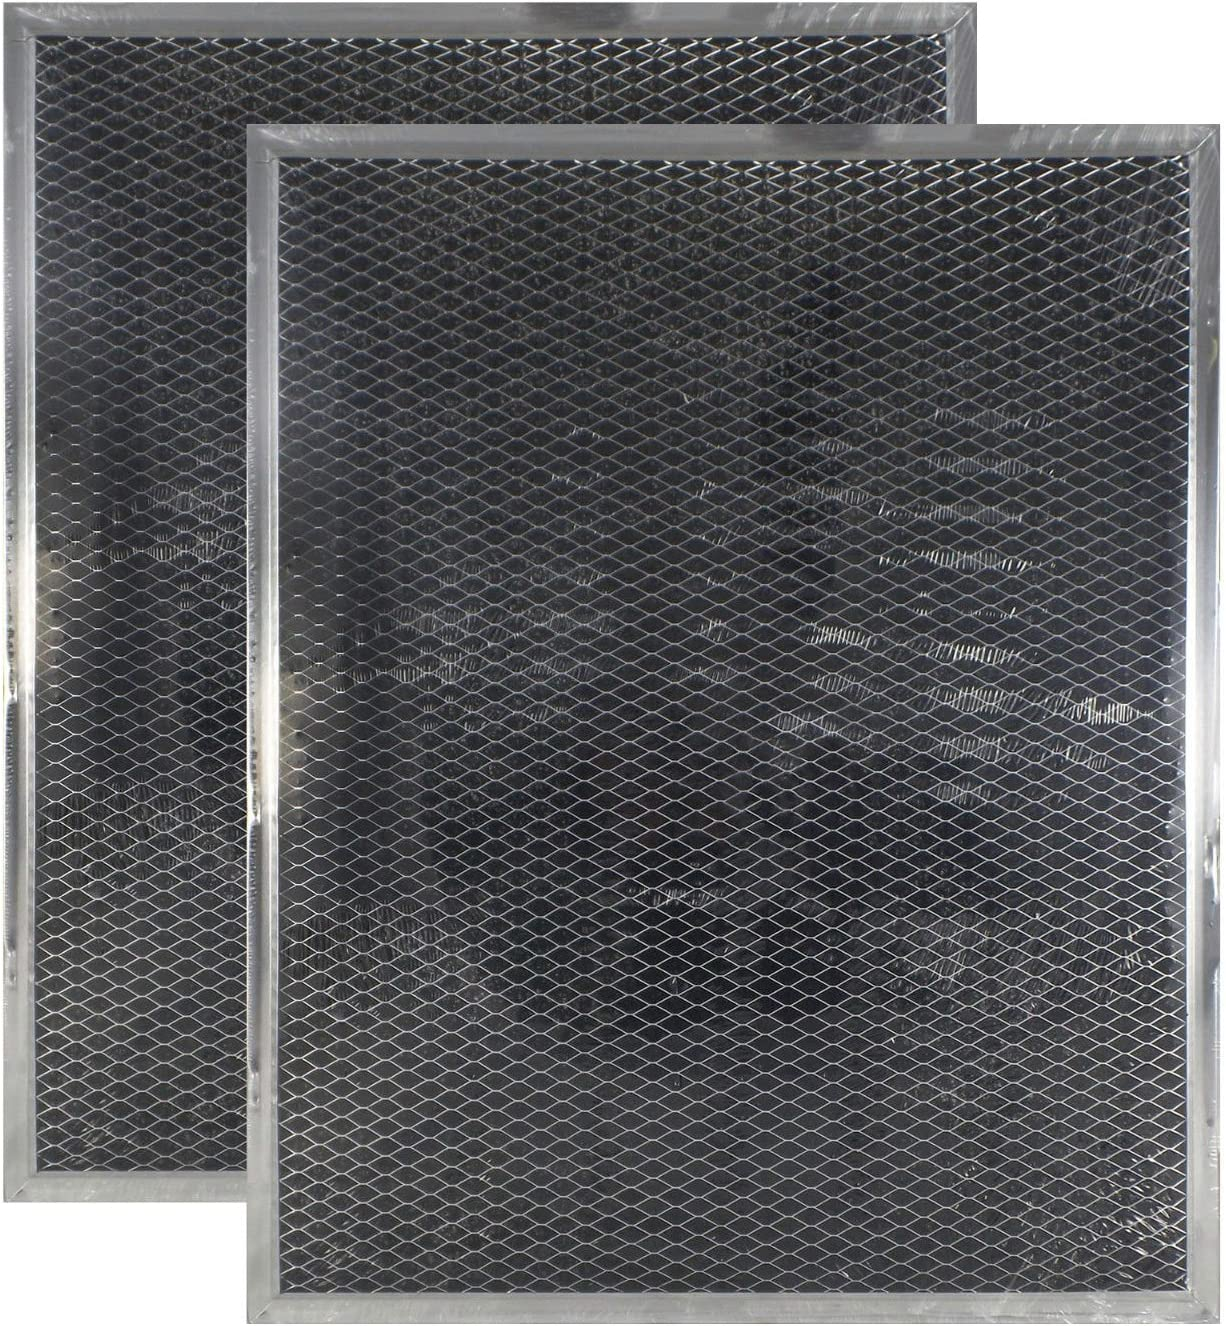 Compatible Range Hood Charcoal Filters for Broan BPSF30 99010308